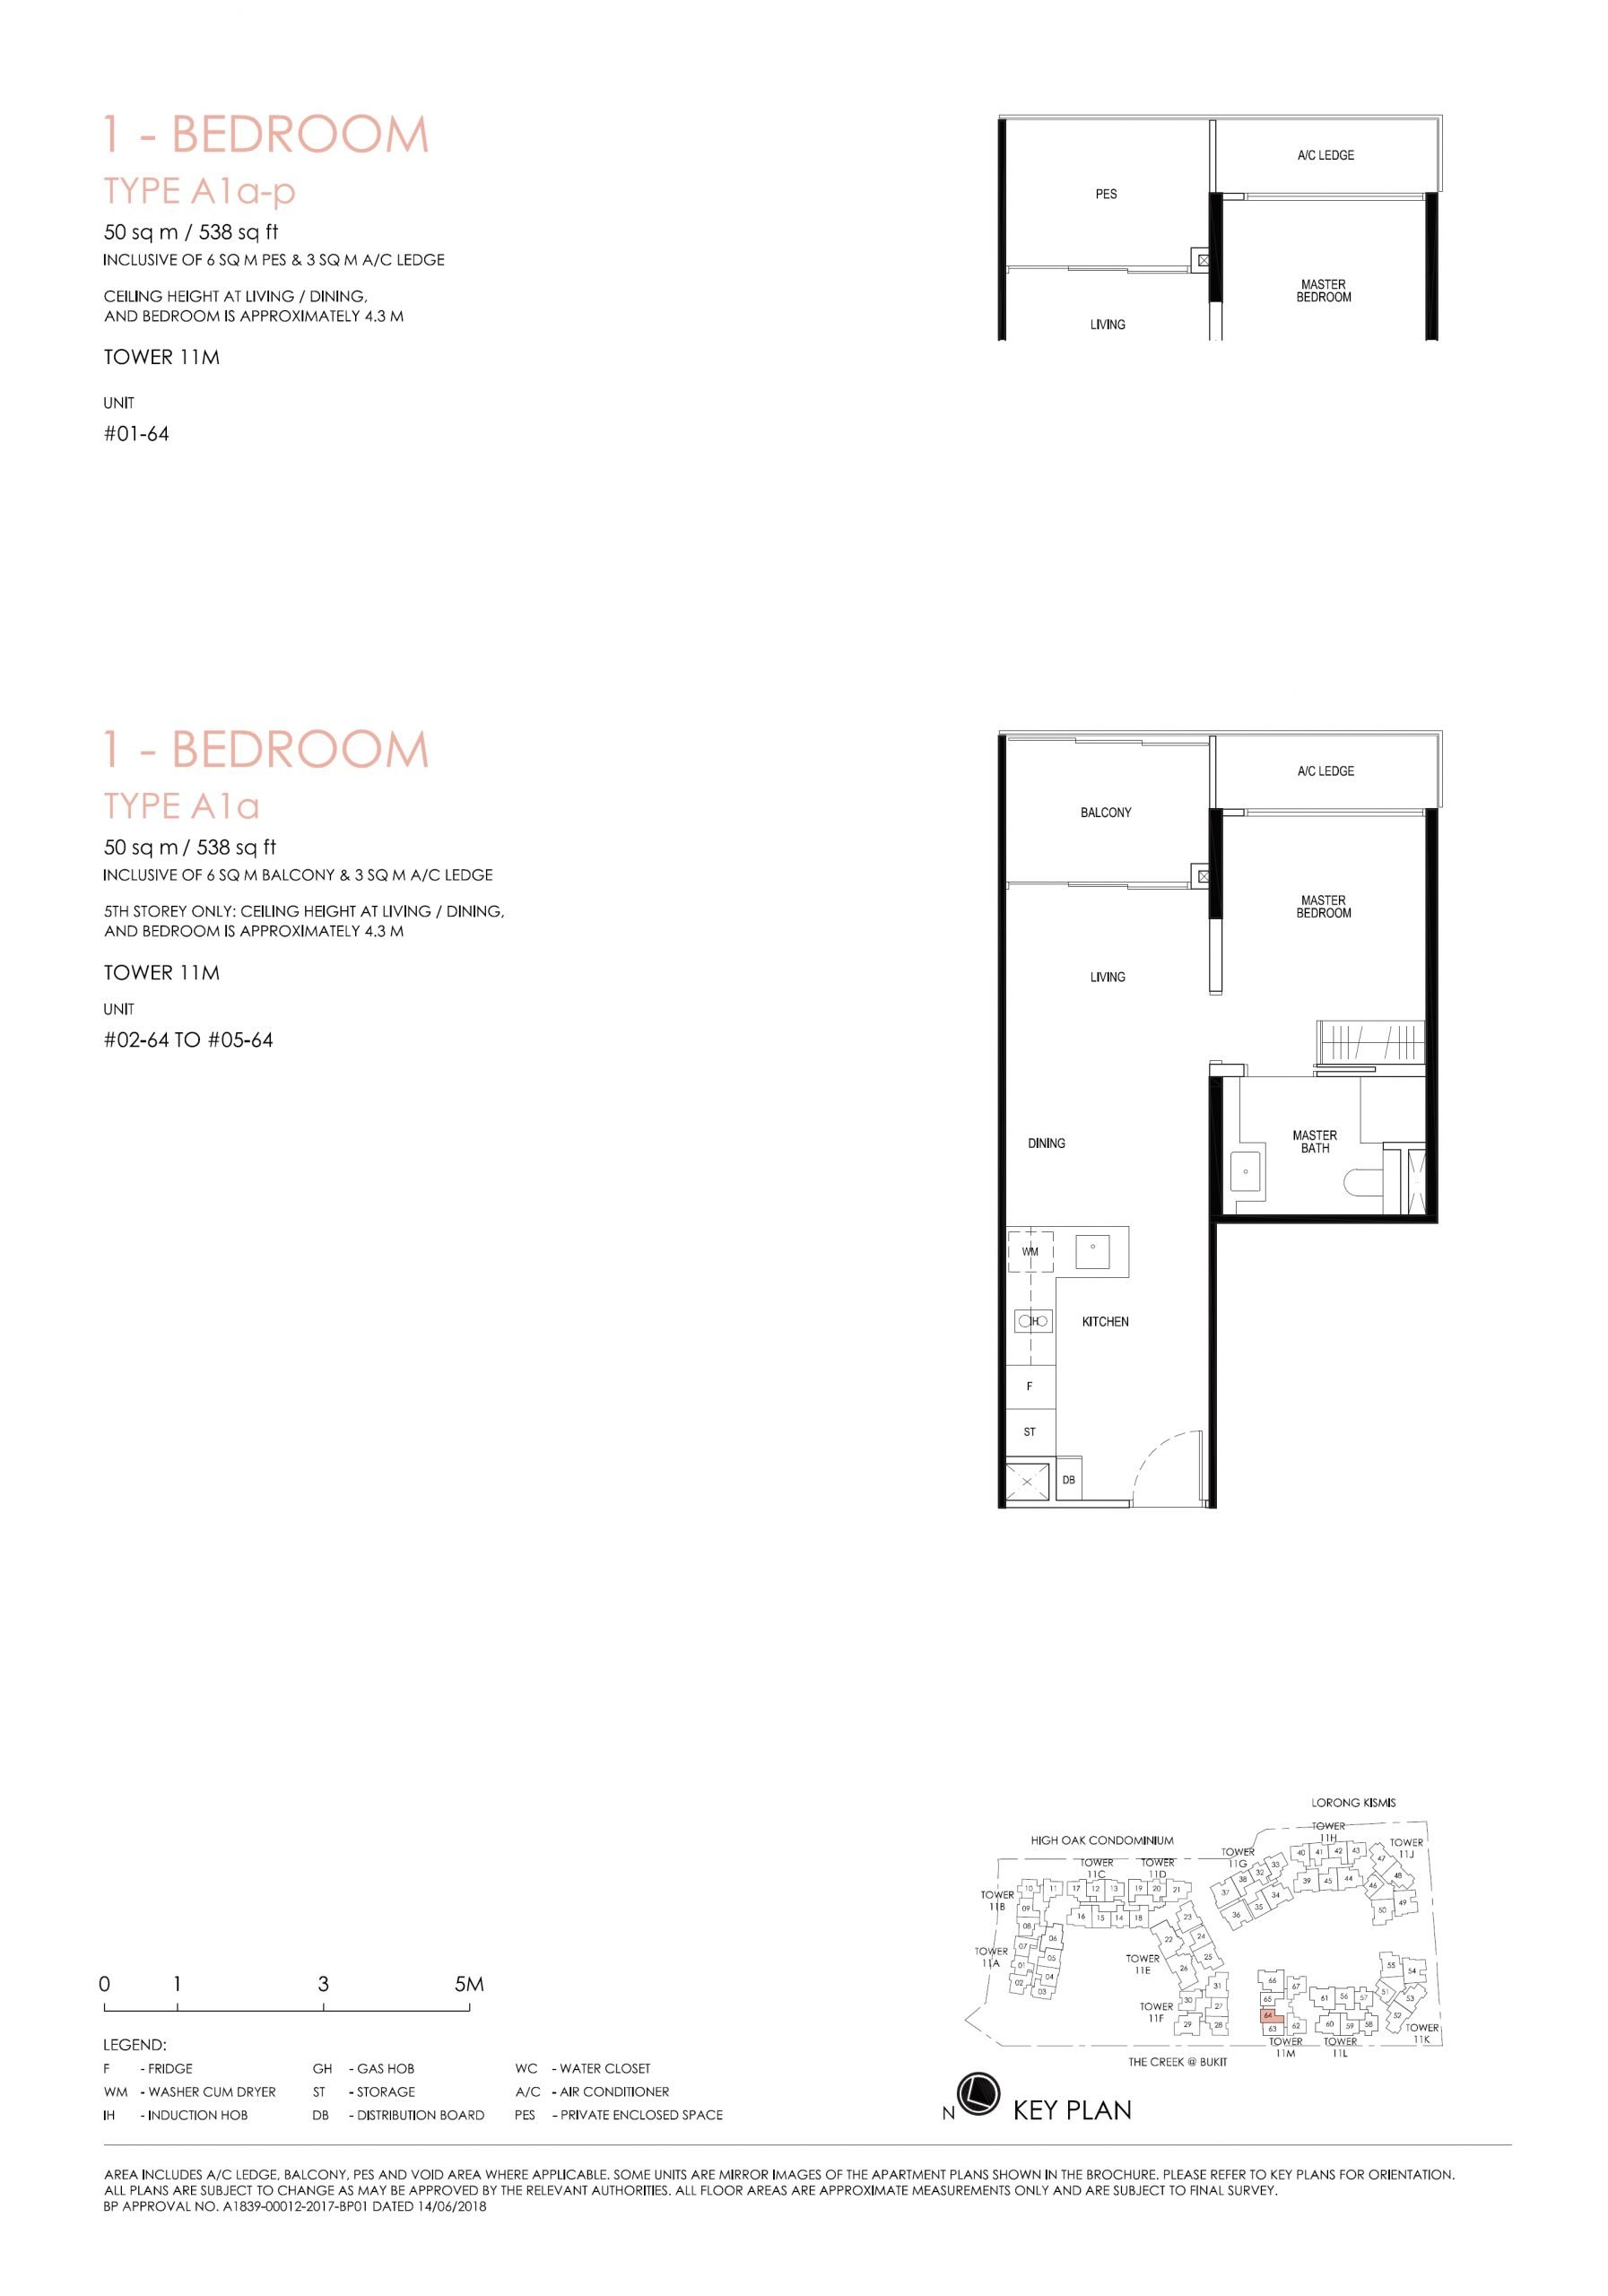 1 Bedroom - Type A1a